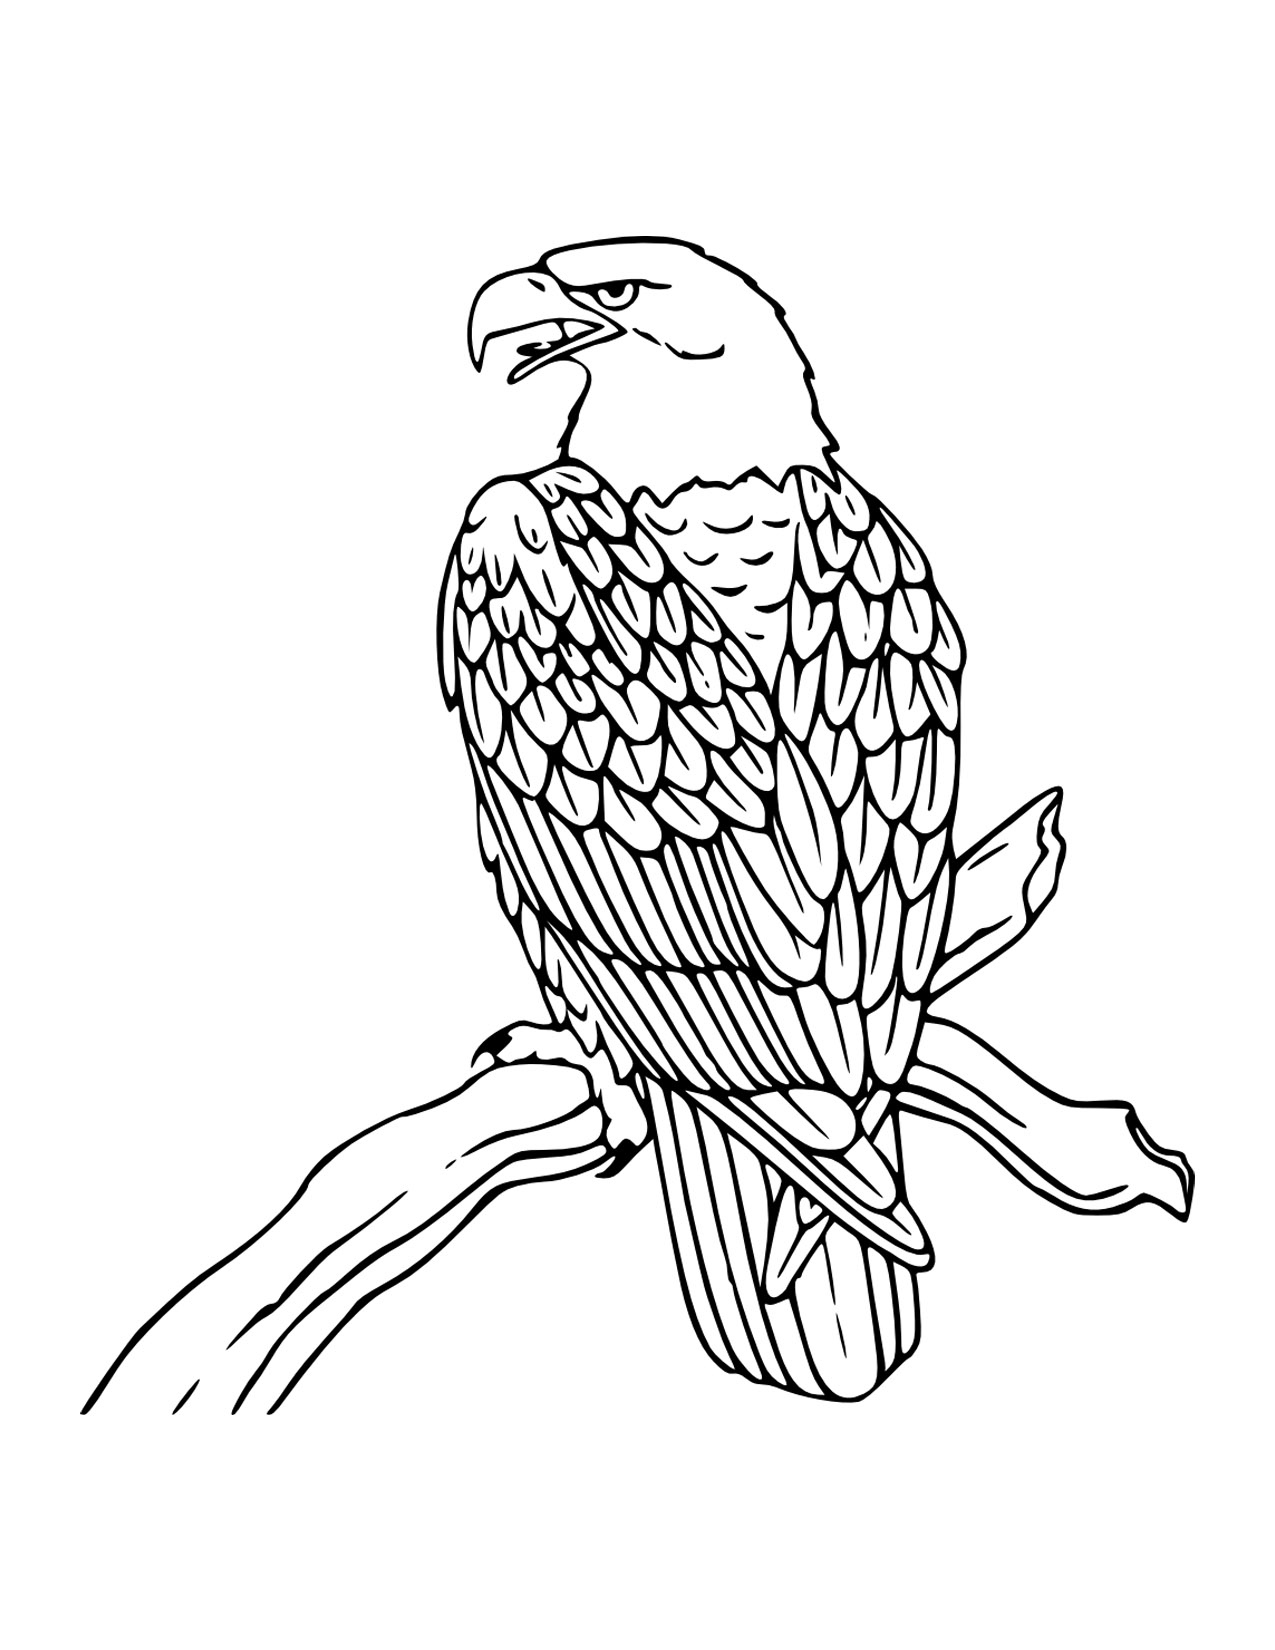 1275x1650 Eagle Coloring Pages Beautiful Free Coloring Pages Of Golden Eagle